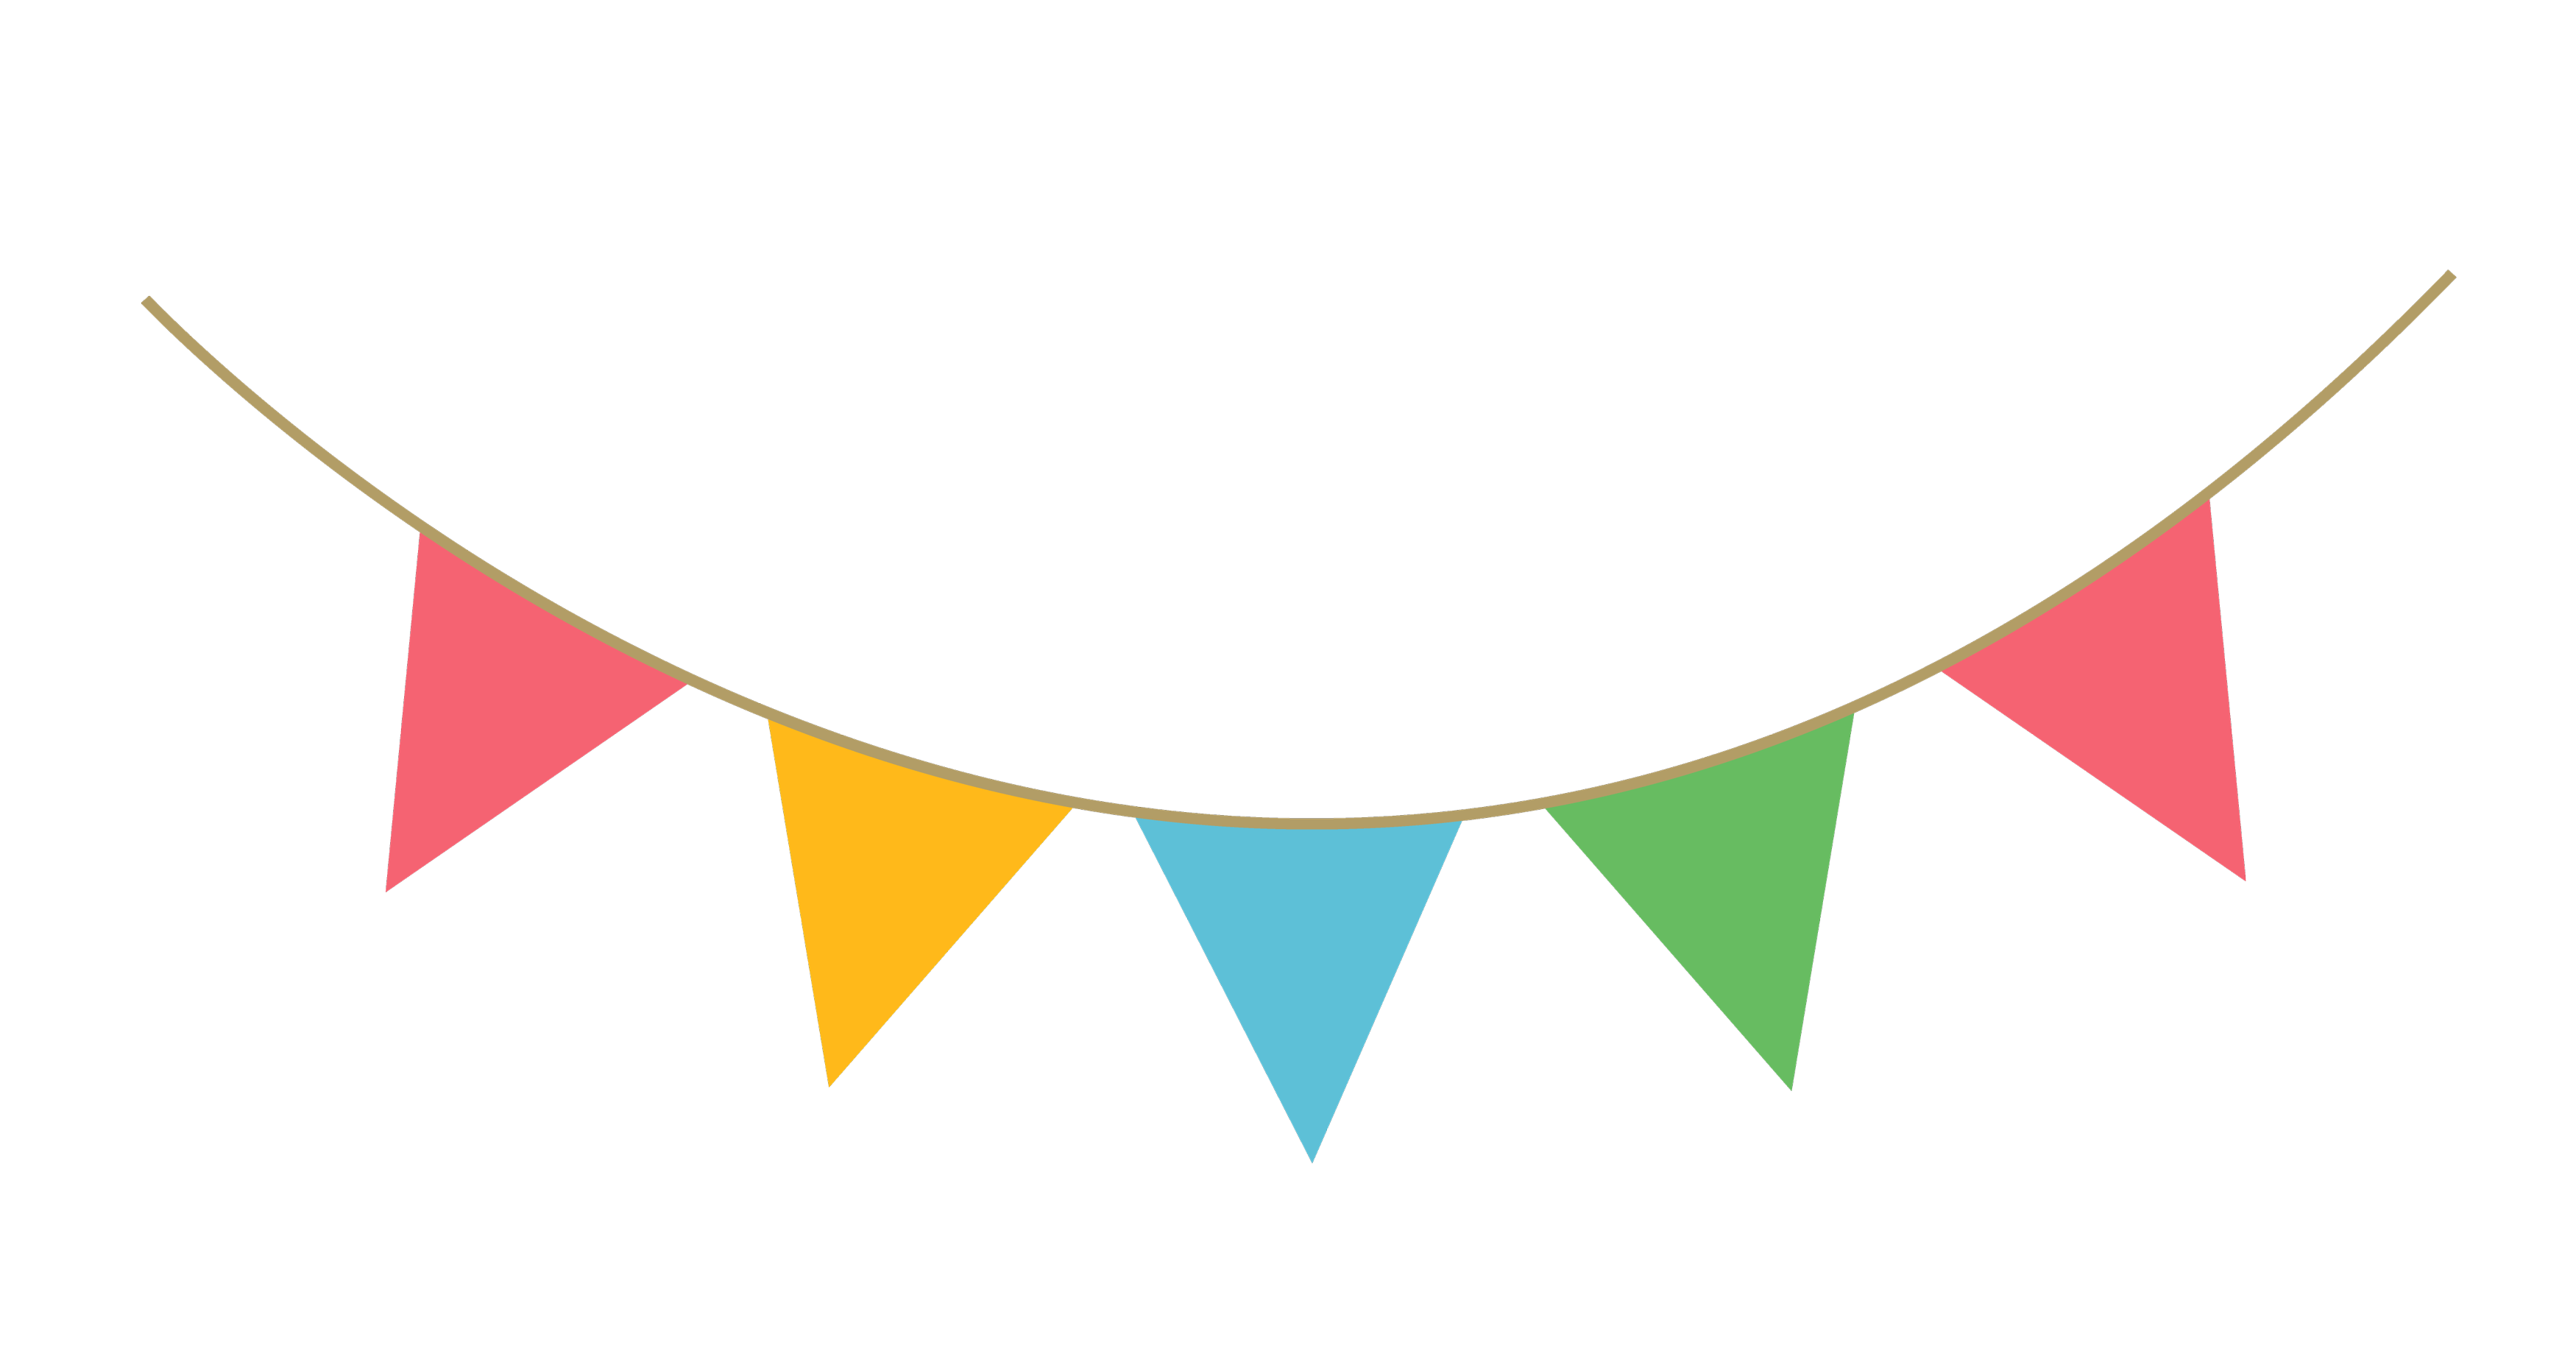 Party decoration png. Streamer image pngpix resolution